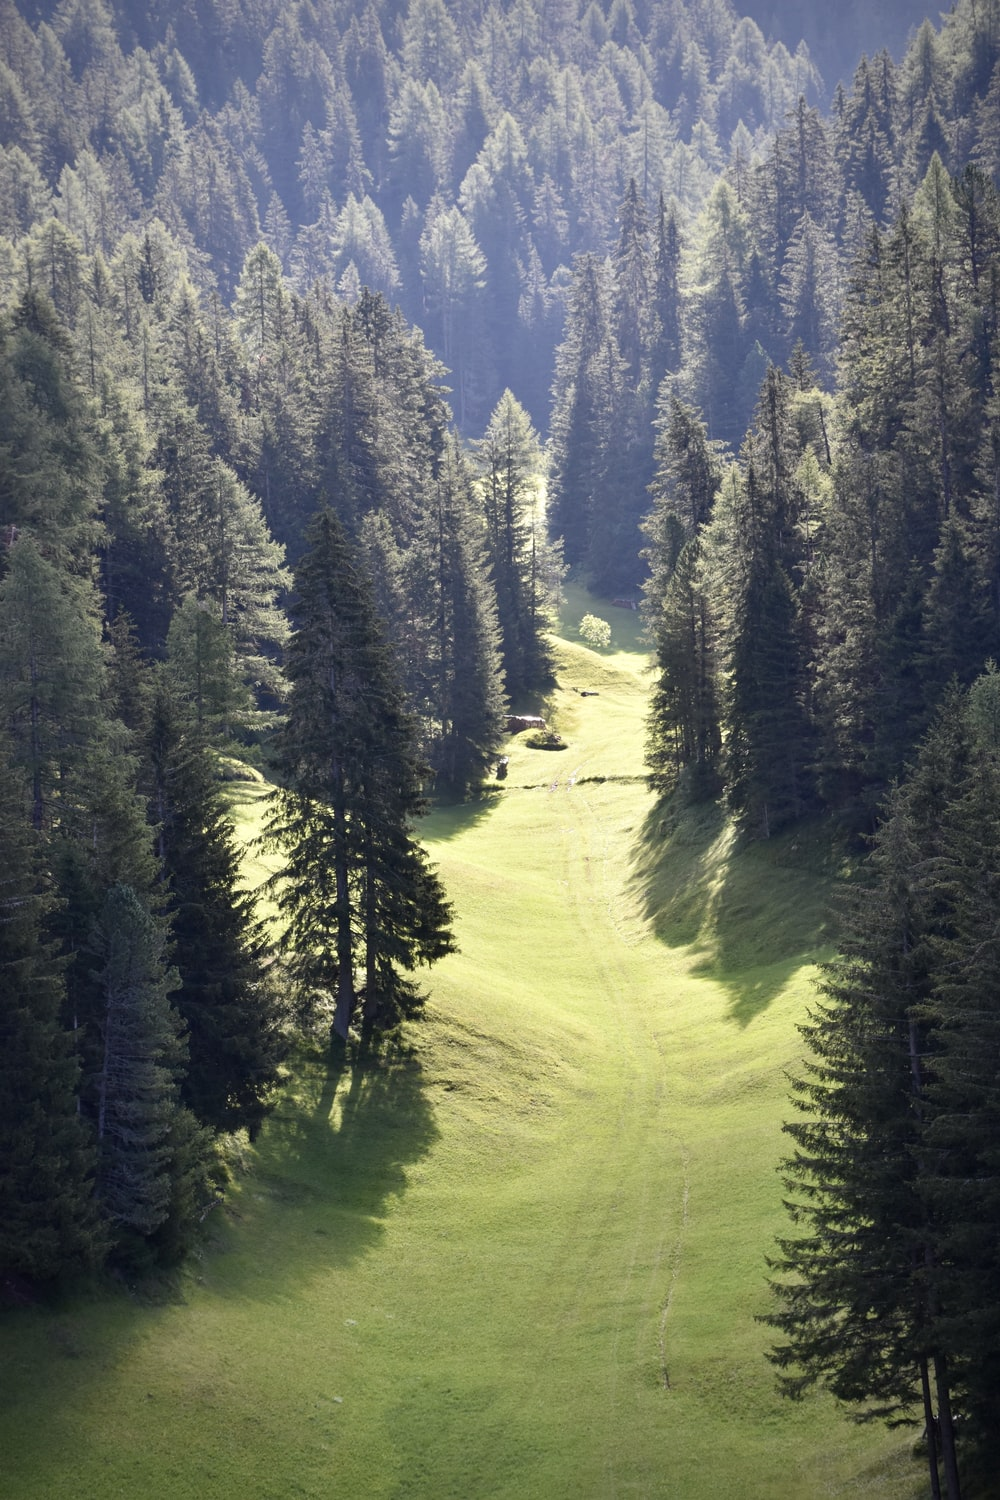 green pine trees on green grass field during daytime